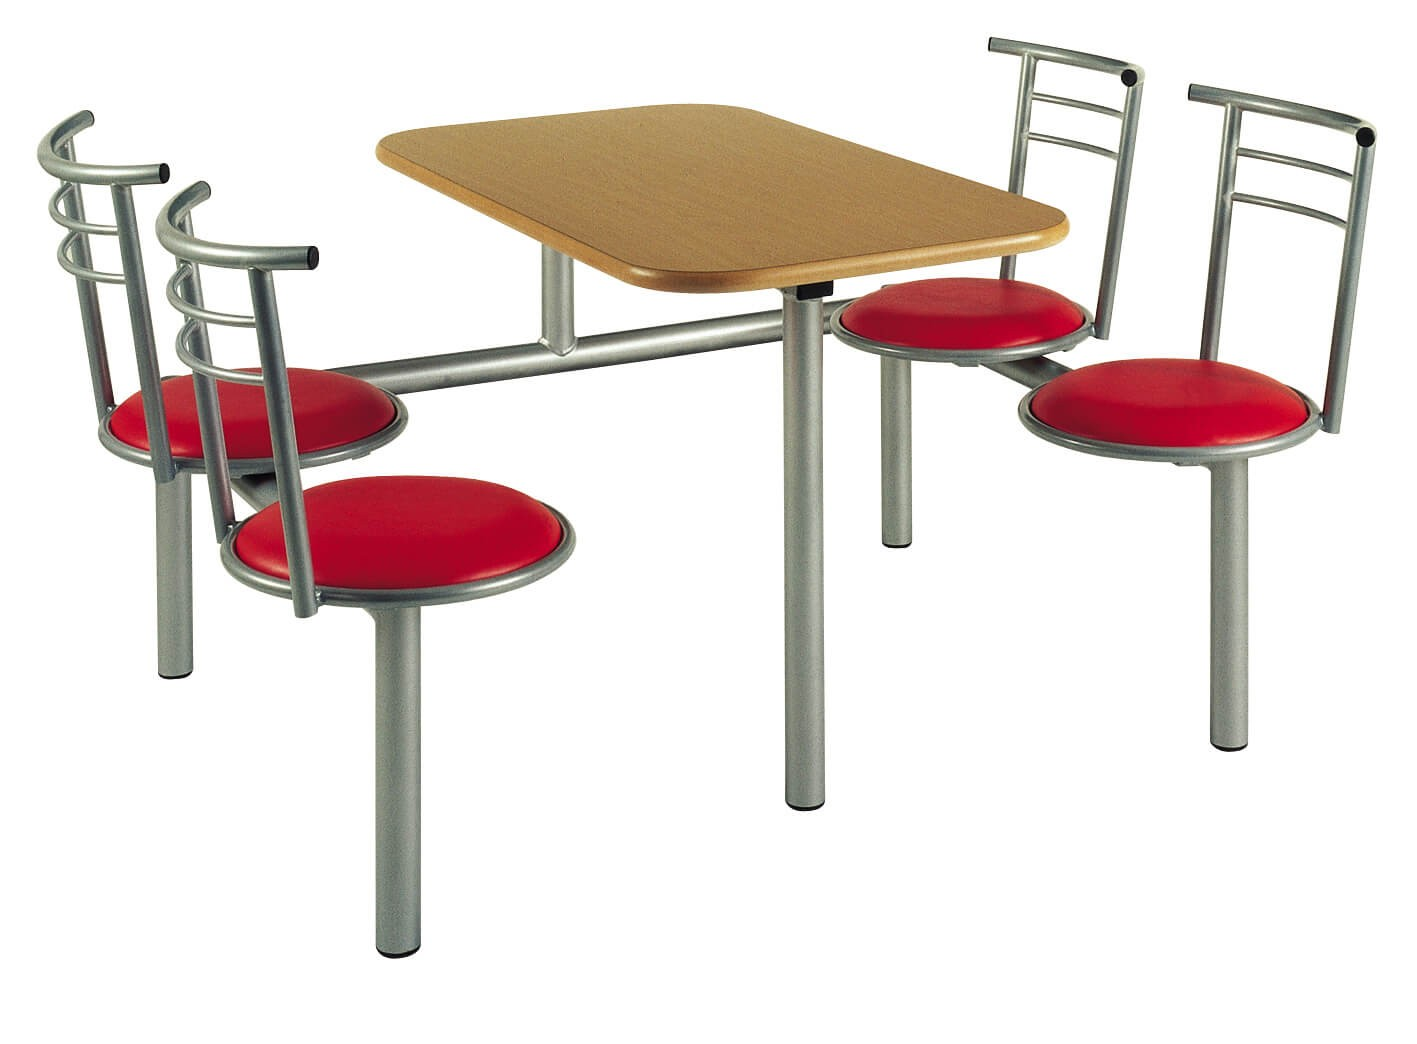 Canteen Table with Metal Frame & Upholstered Seats